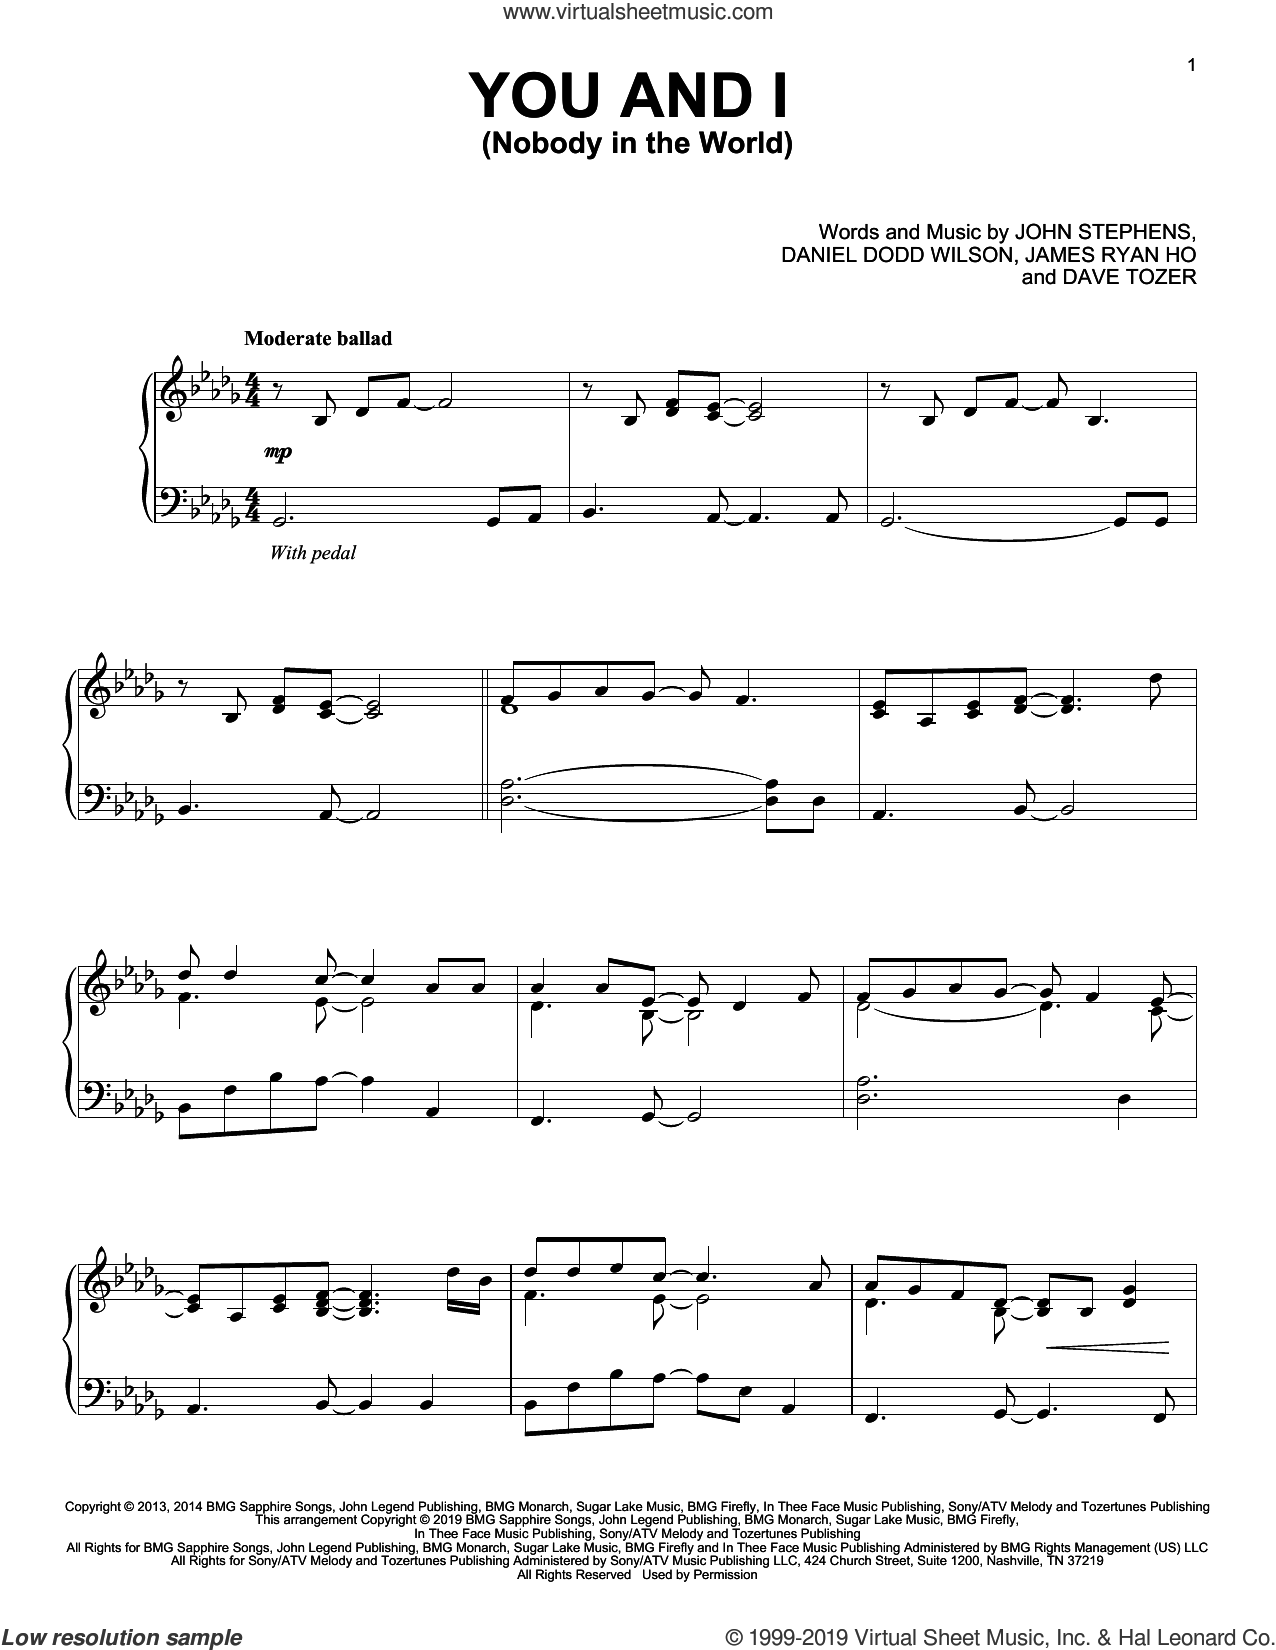 You And I (Nobody In The World) sheet music for piano solo by John Legend, Daniel Dodd Wilson, Dave Tozer, James Ryan Ho and John Stephens, intermediate skill level